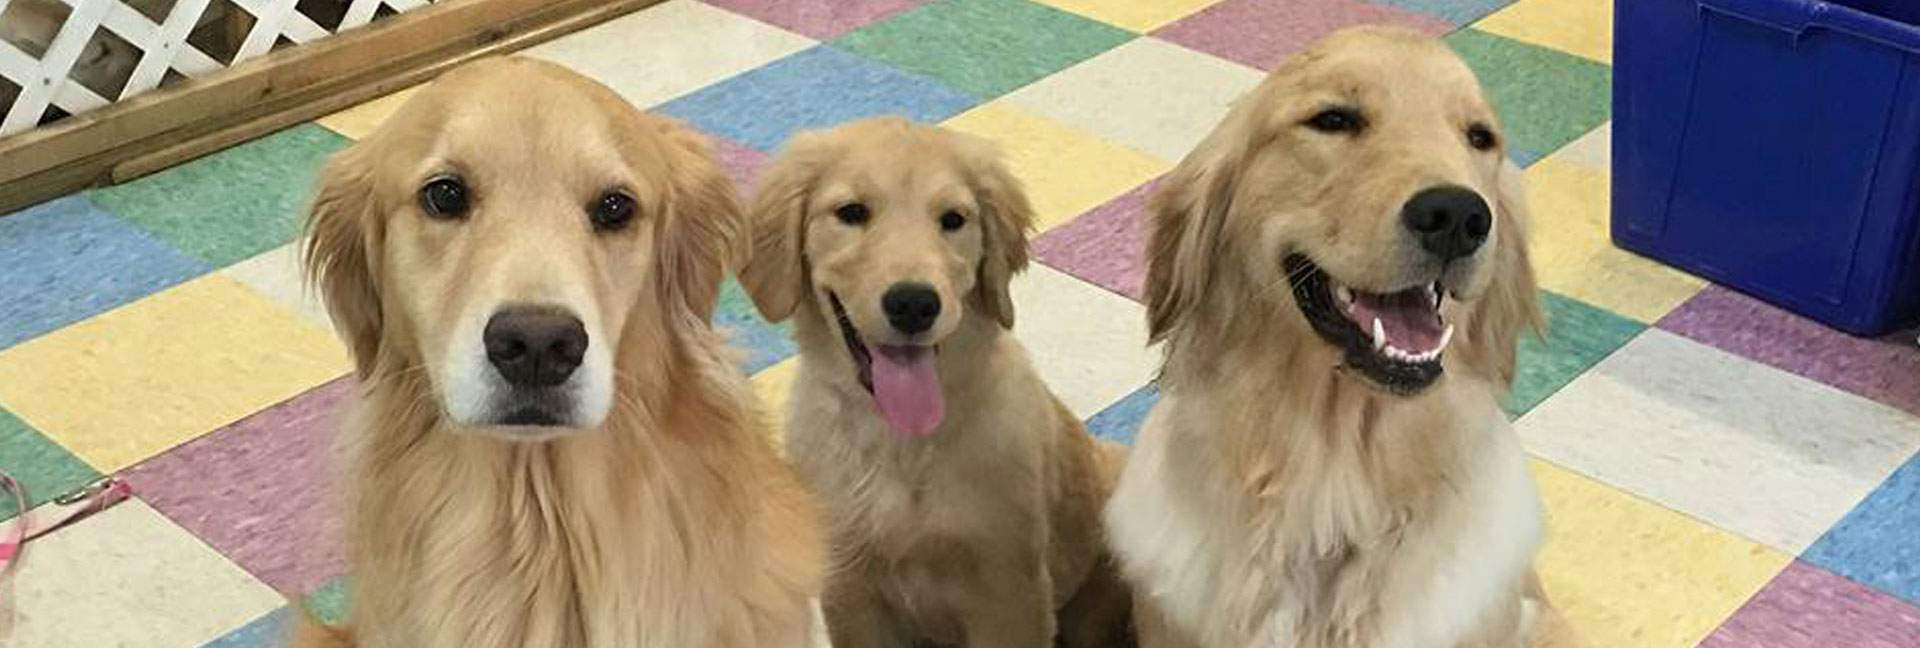 Golden Retrievers all related, 6yo, 6mo, 1yr